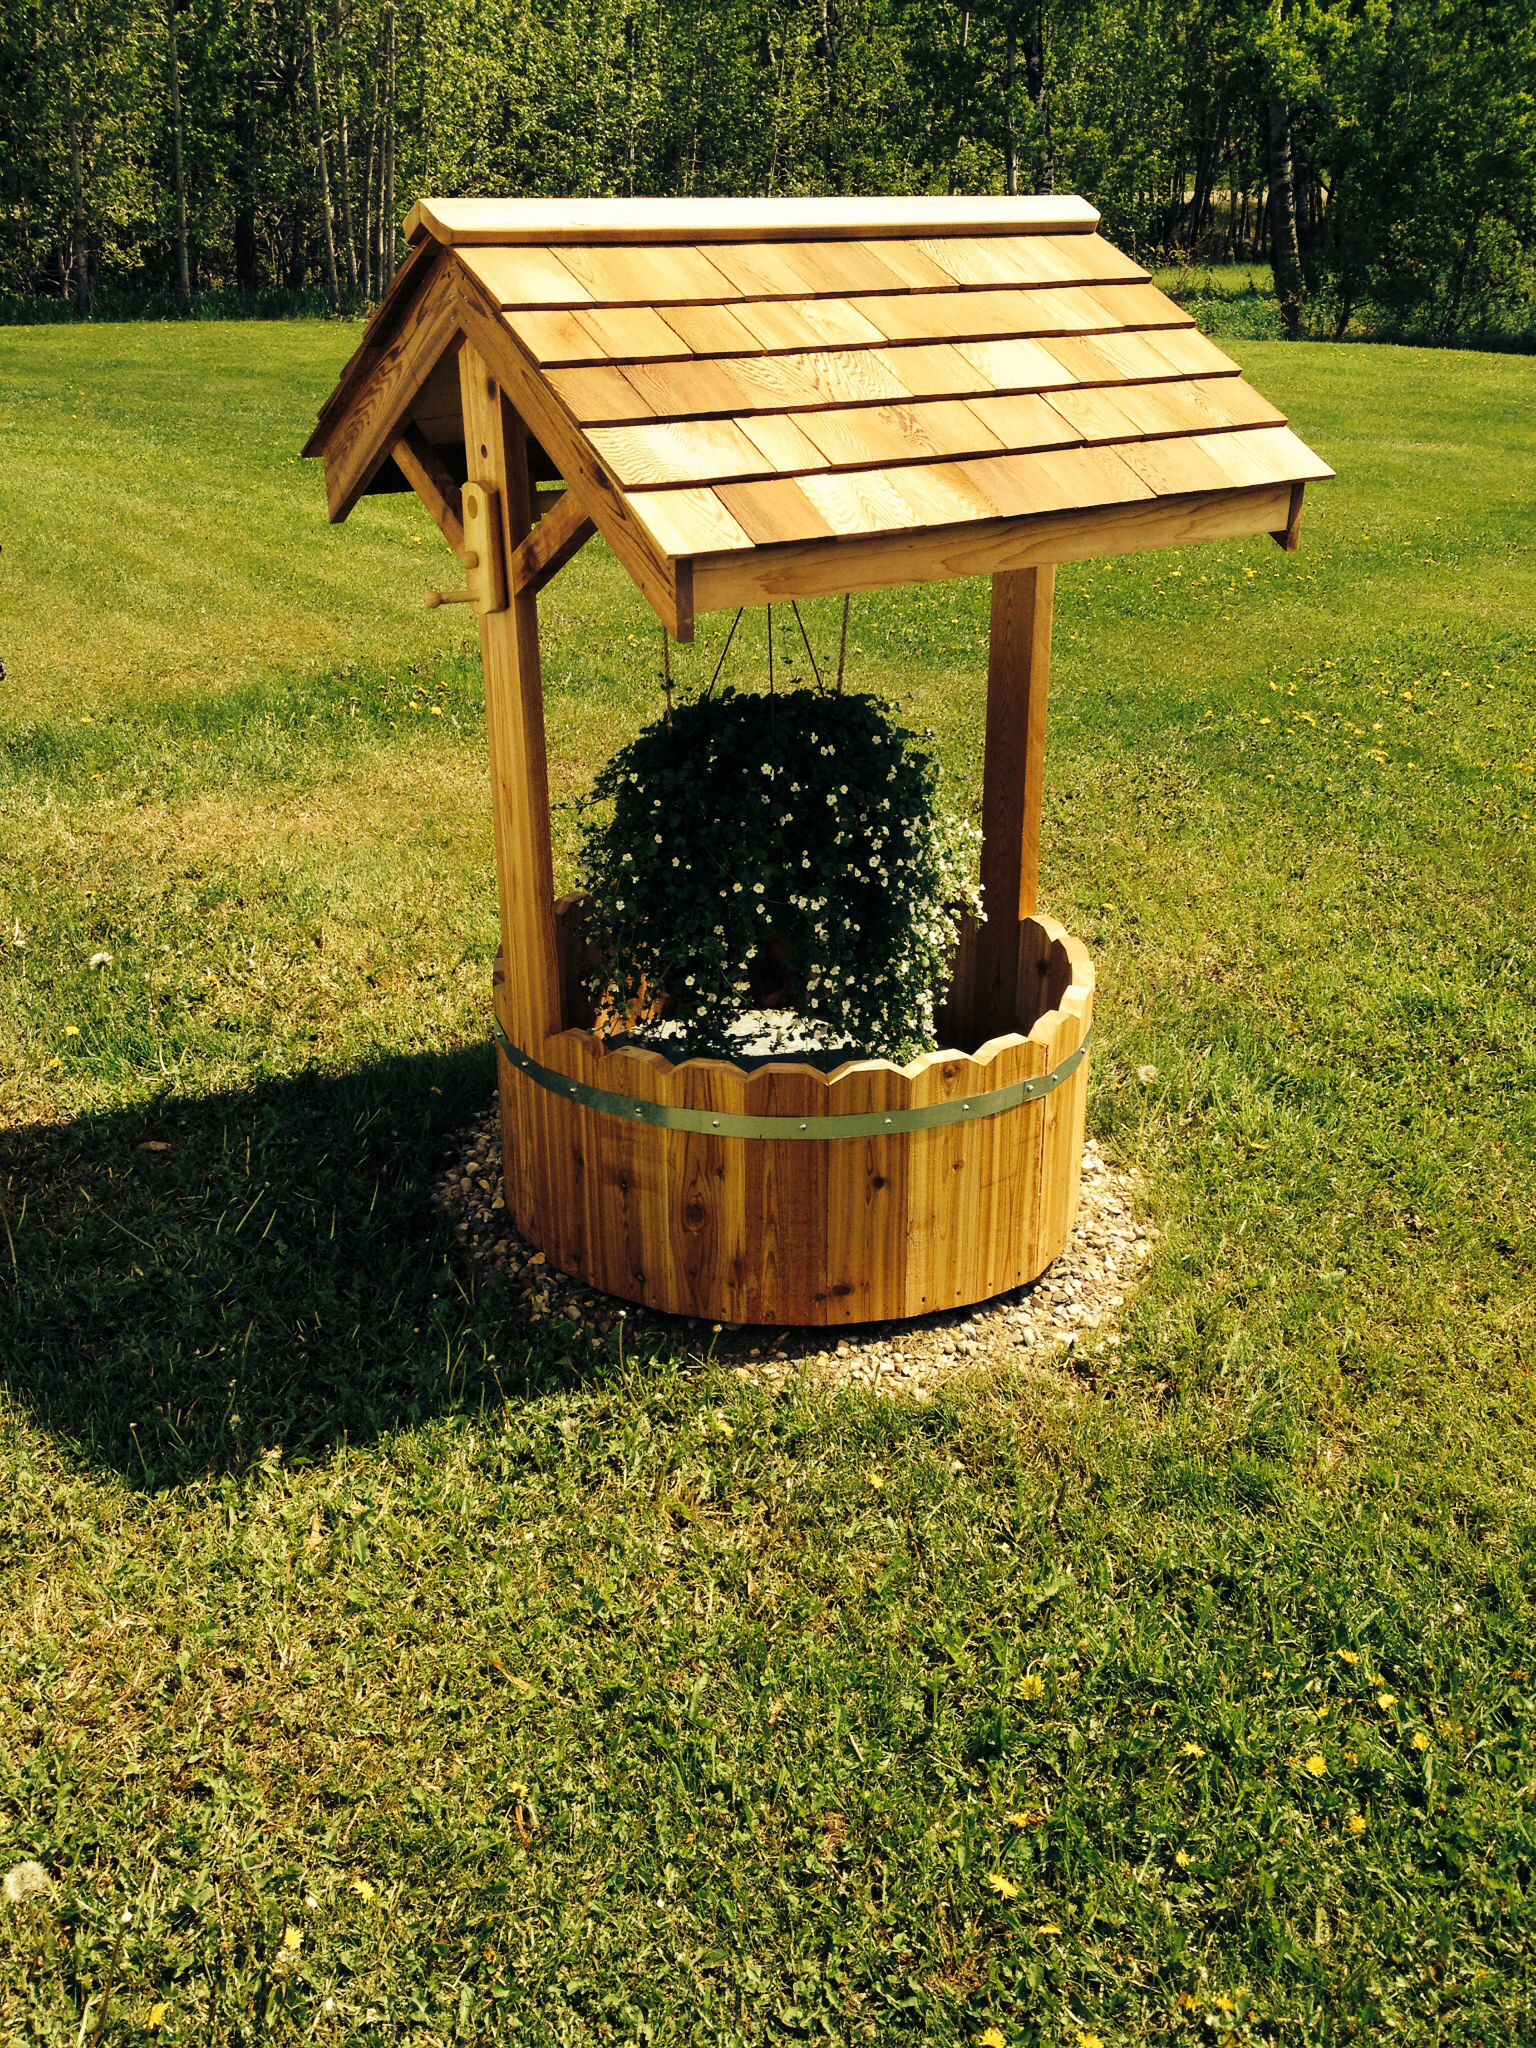 wishing well with planter to hide septic tank just bottom barrell part